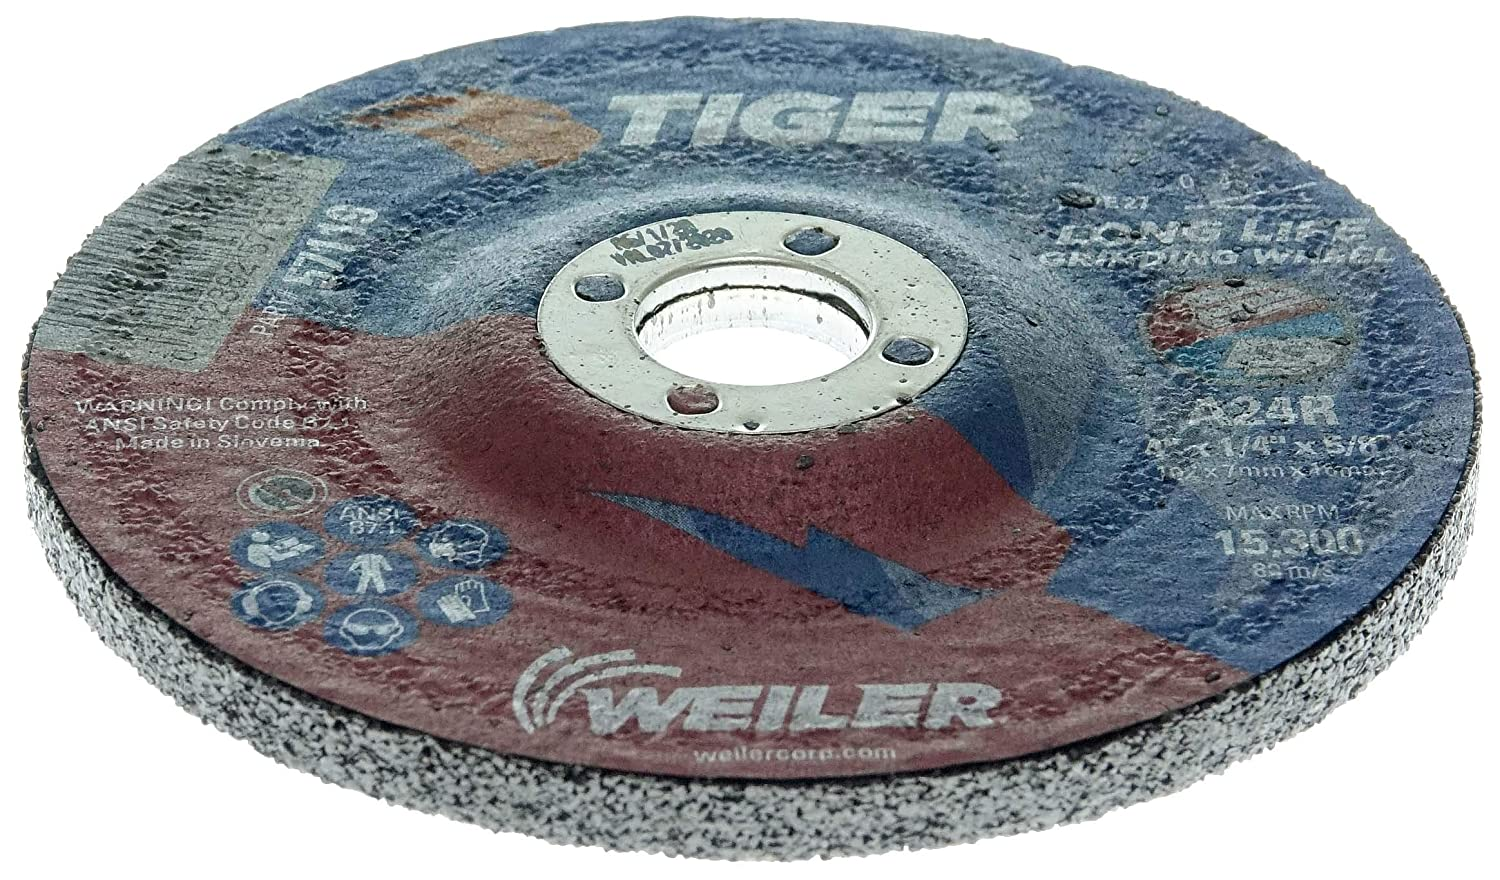 Pack of 10 Coating Cut Cutting Angle Flute Weiler 57119 4 x 1//4 Tiger AO Type 27 Grinding Wheel A24R 5//8 A.H